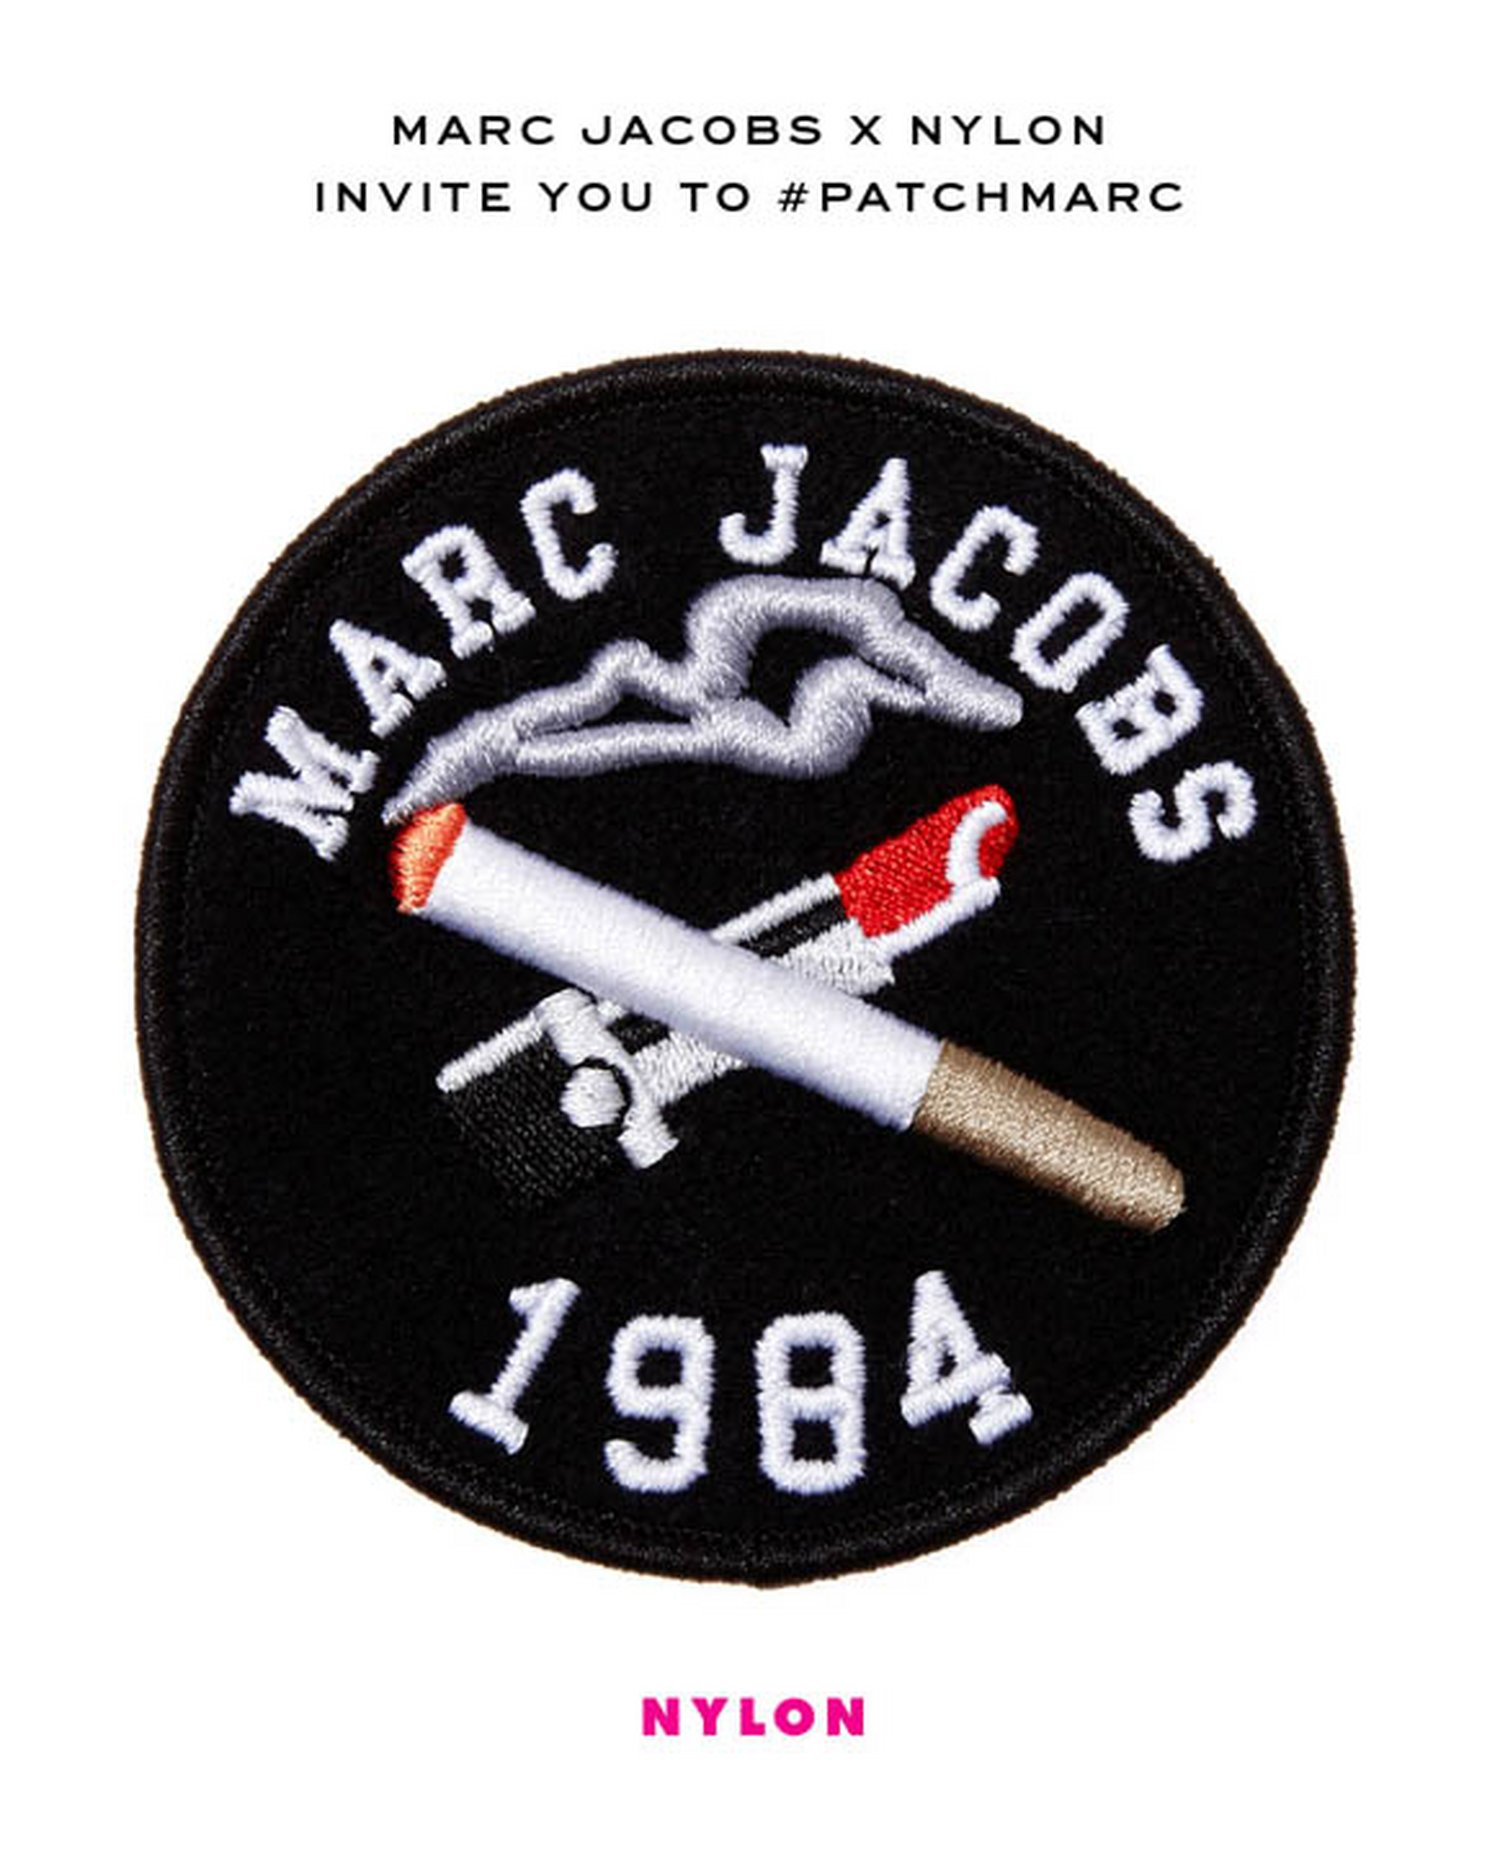 Marc Jacobs x NYLON invite you to #PatchMarc